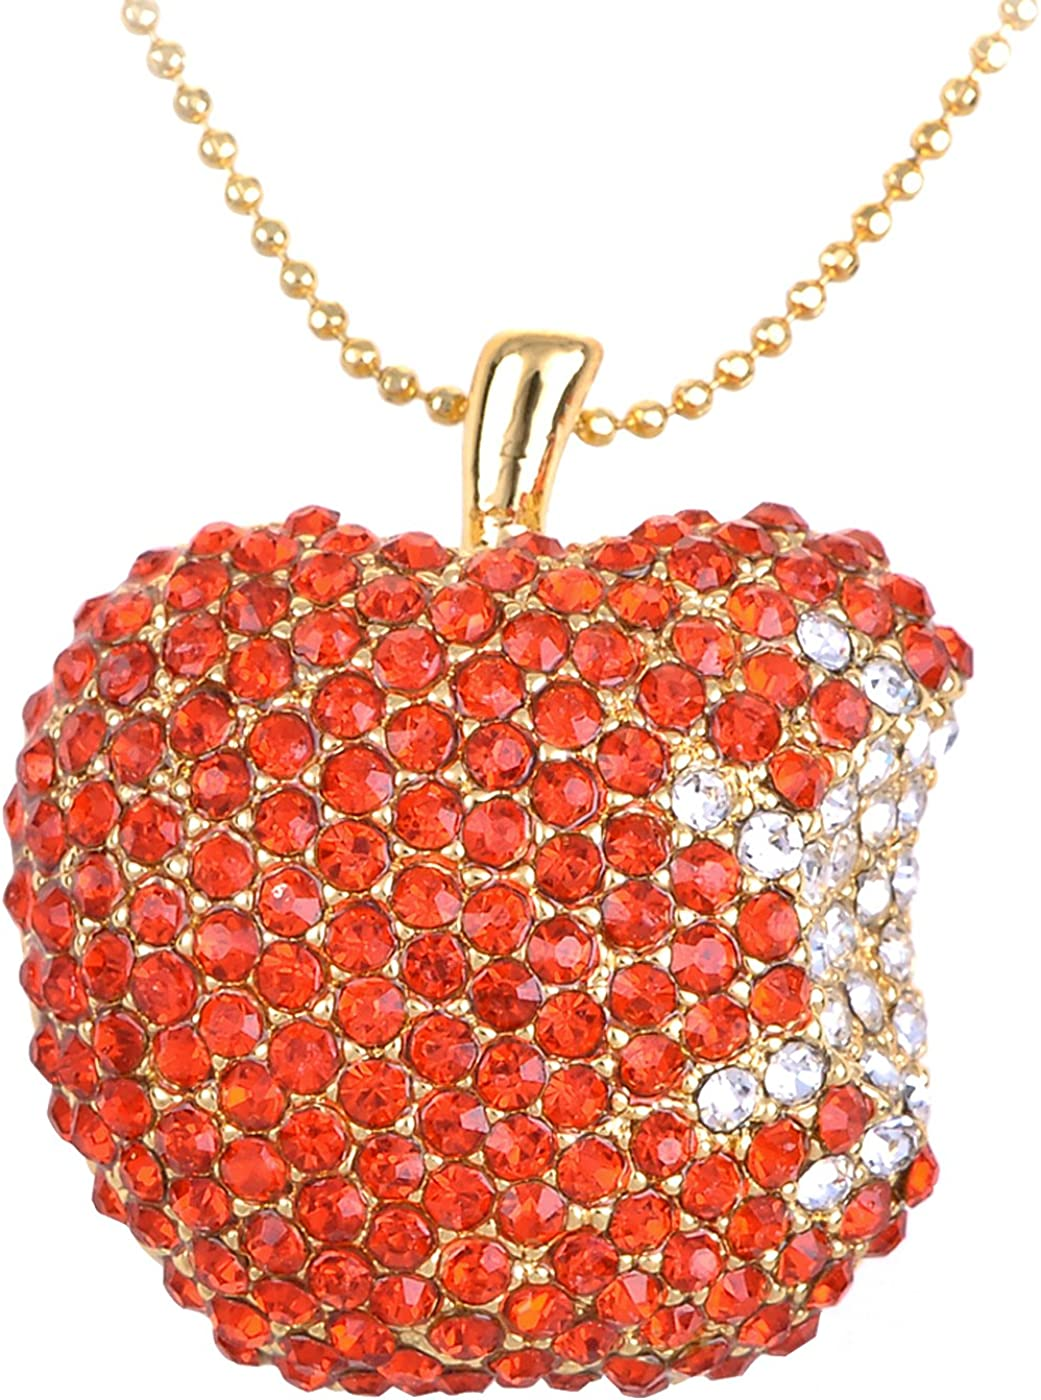 Alilang Golden Tone Red Rhinestones Bitten Apple Fruit Pendant Chain Necklace